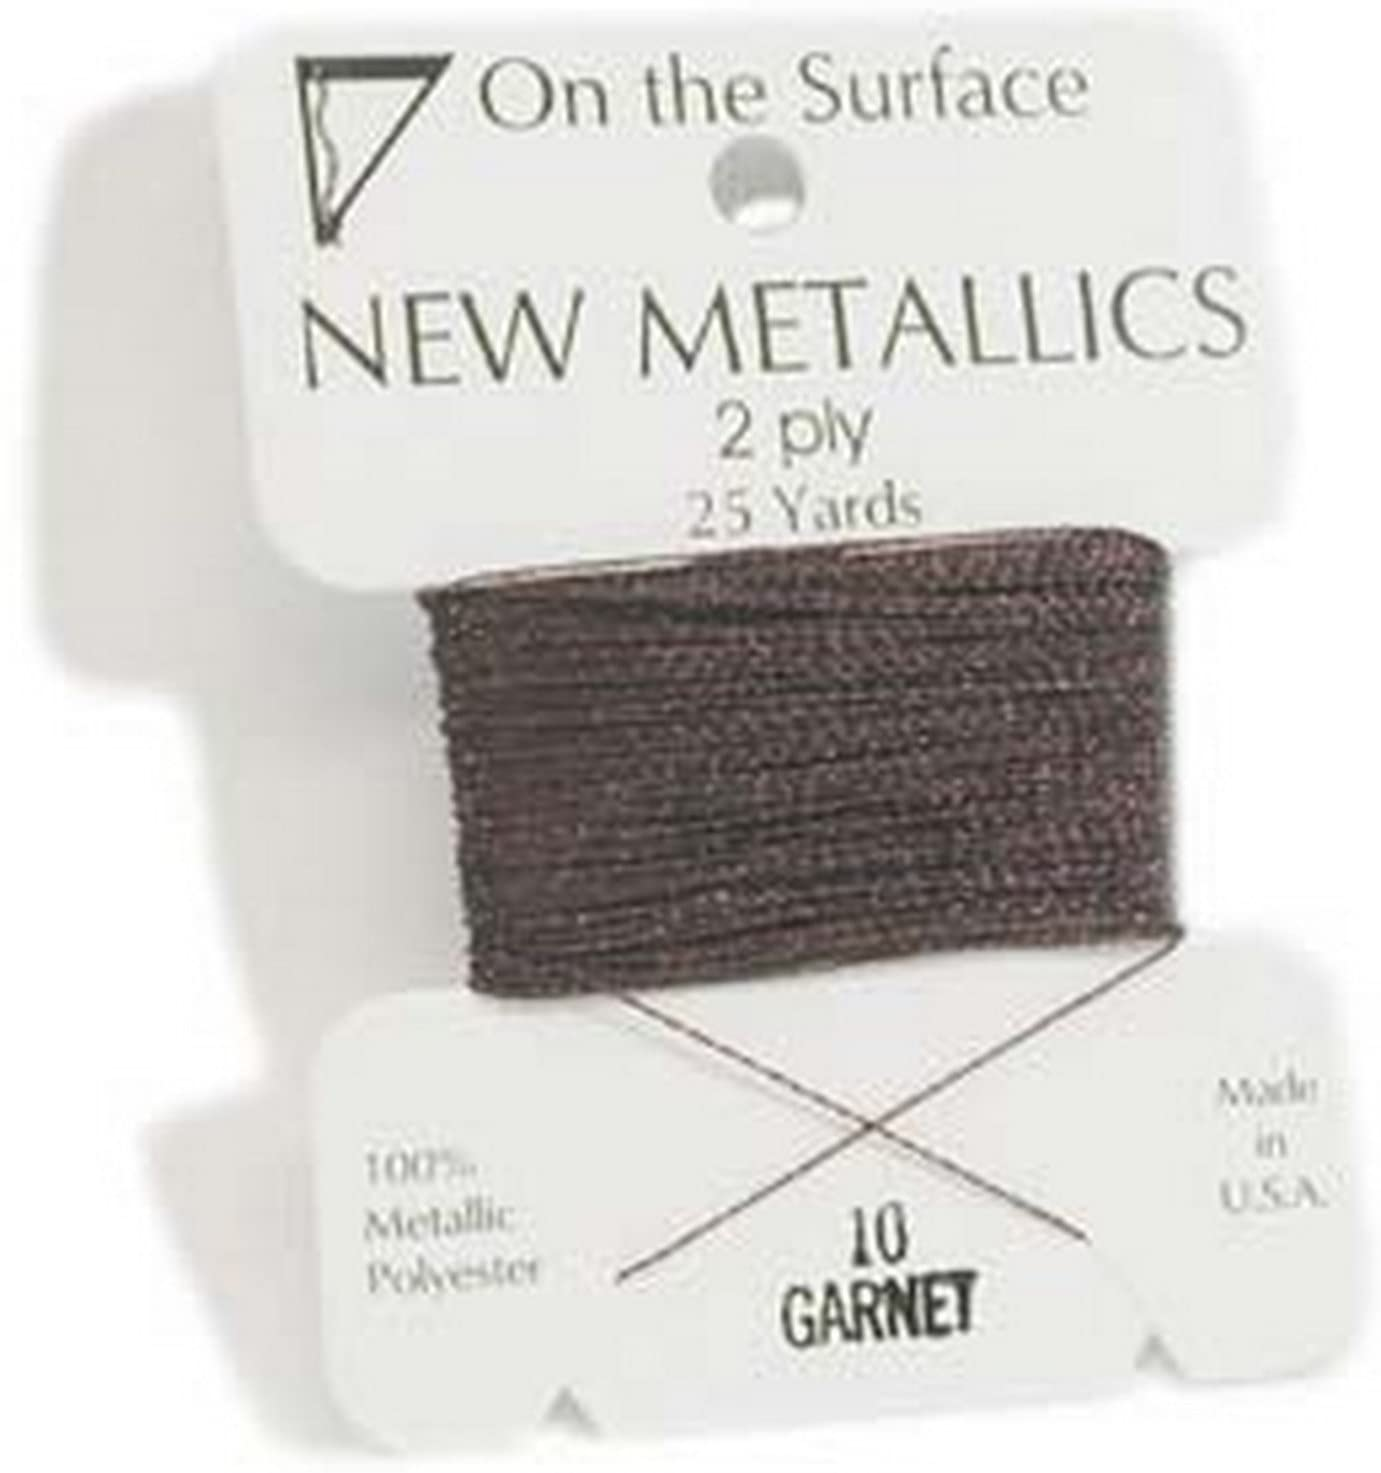 On The Surface - Metallic Garnet Thread - 25yds - By Stallings Stained Glass